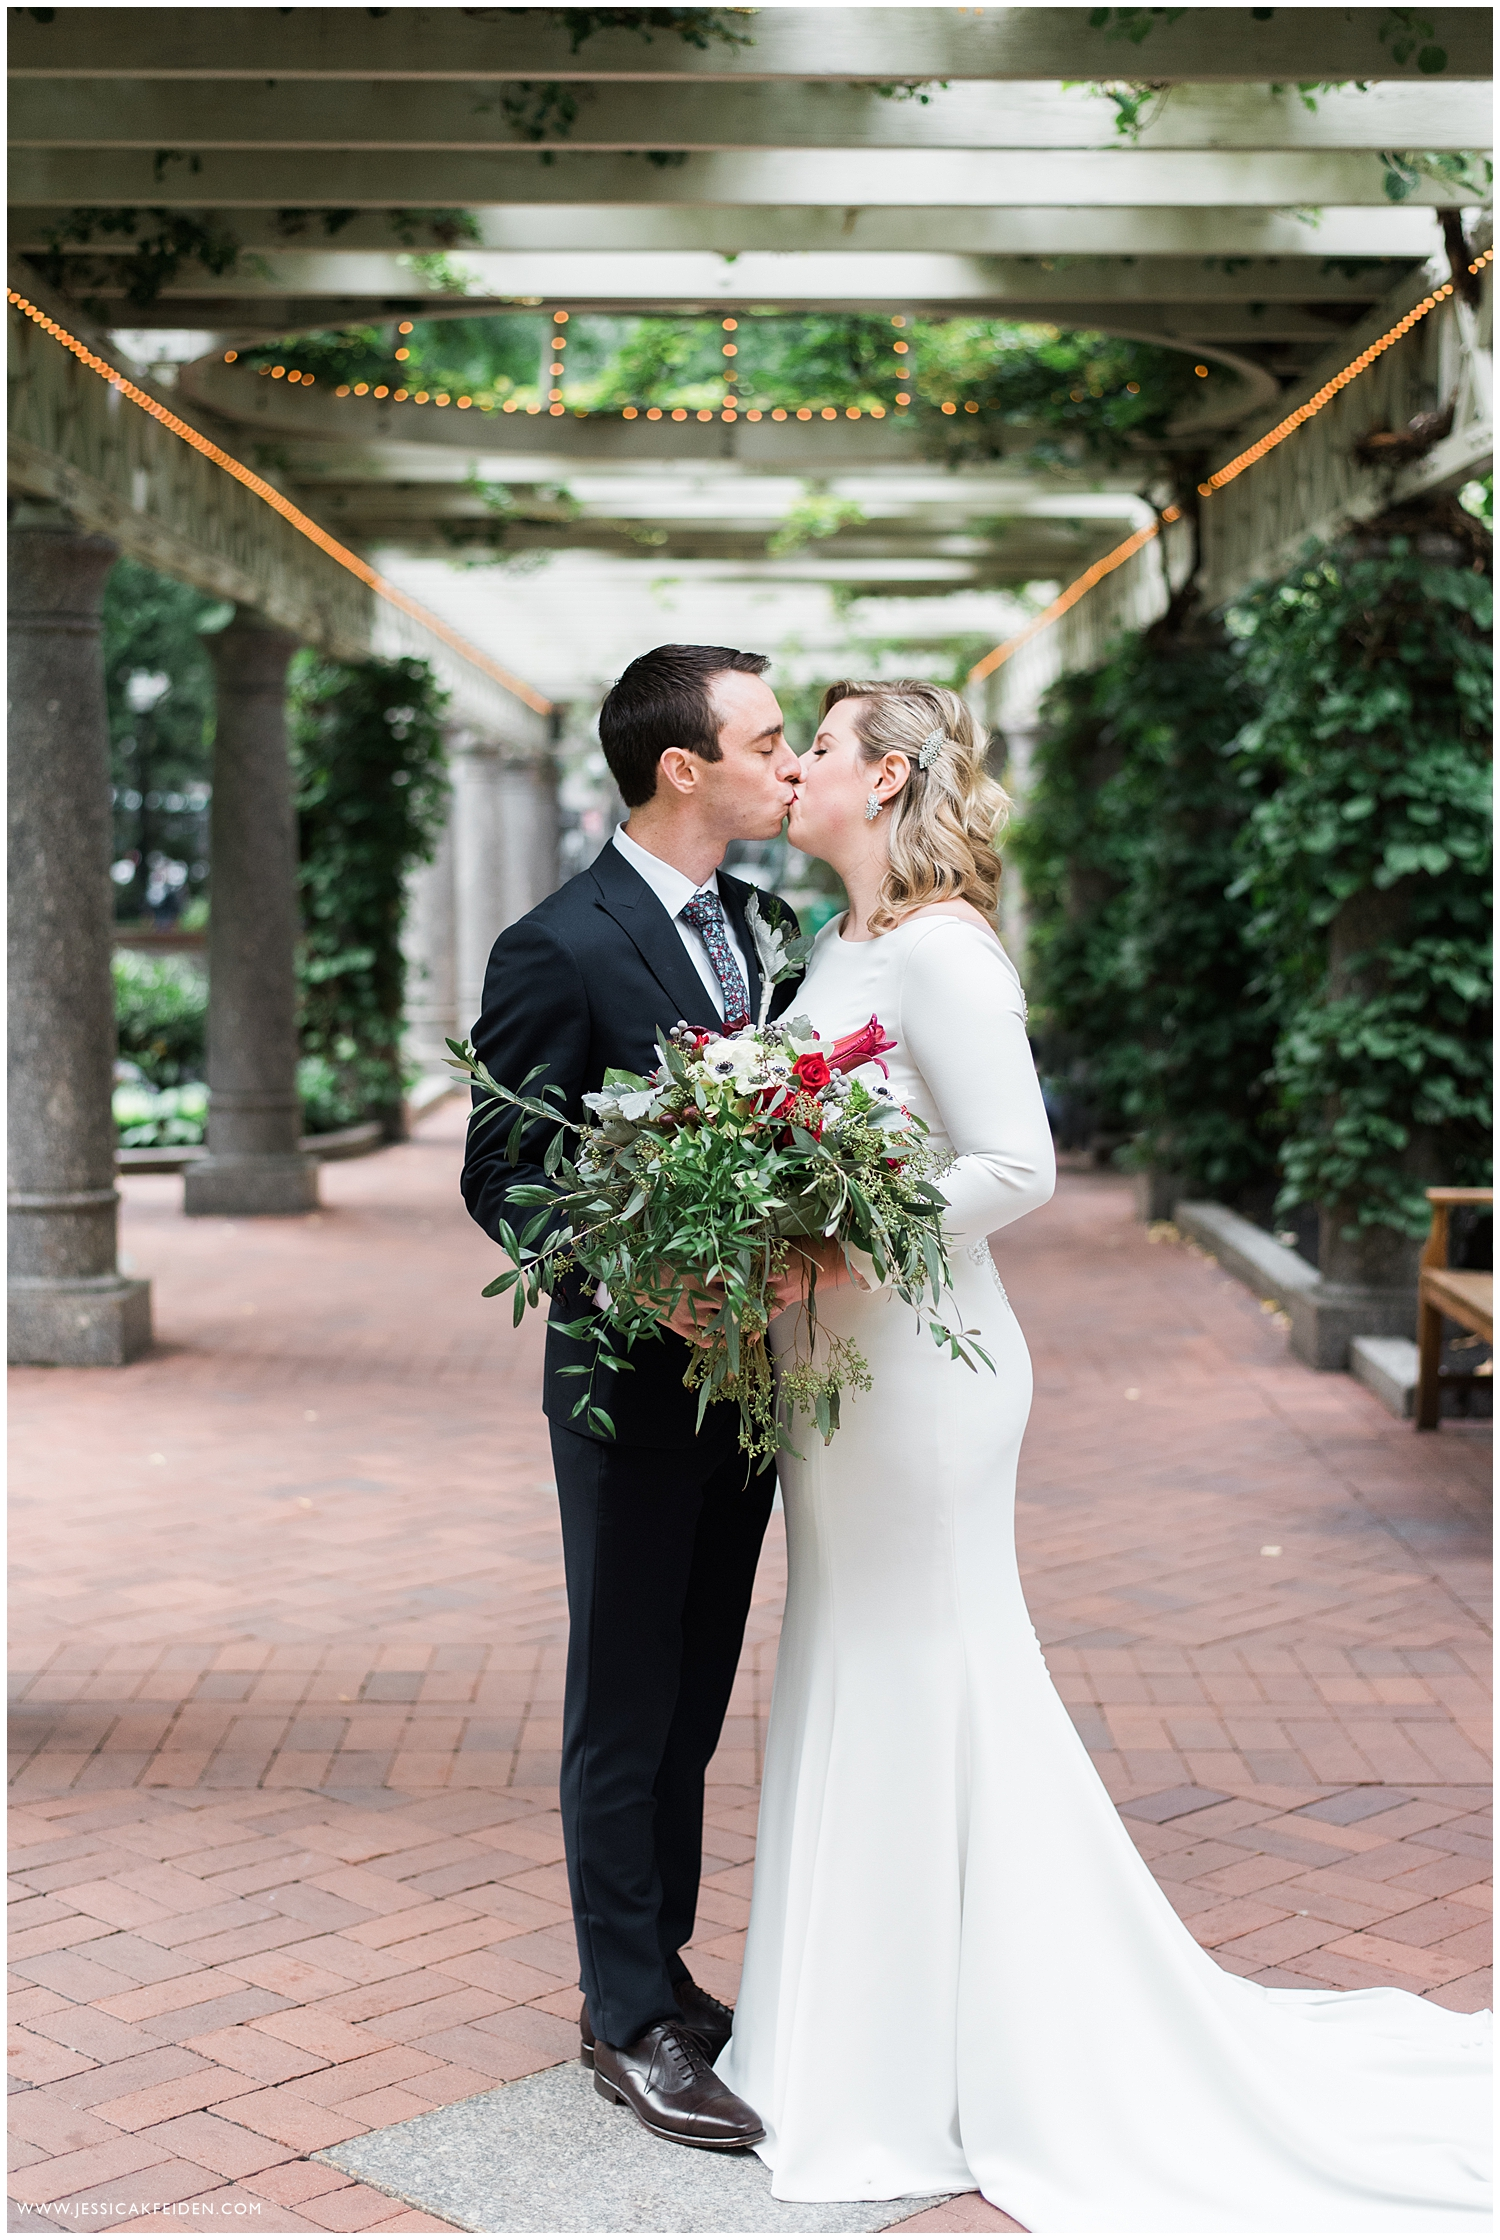 Jessica K Feiden Photography_The State Room Boston Wedding Photographer_0021.jpg